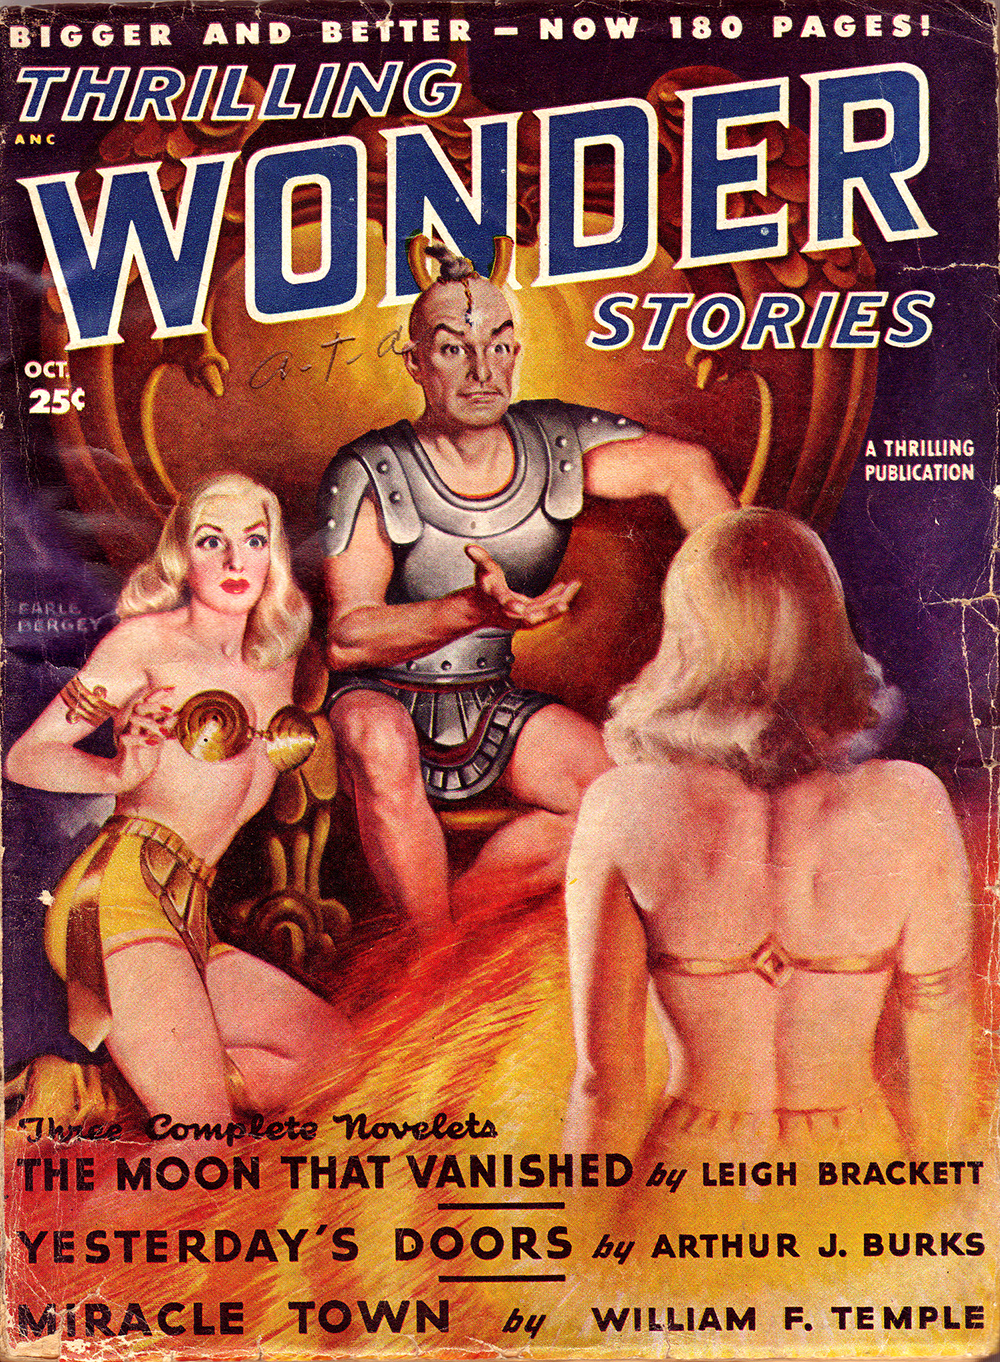 thrilling wonder stories cover art